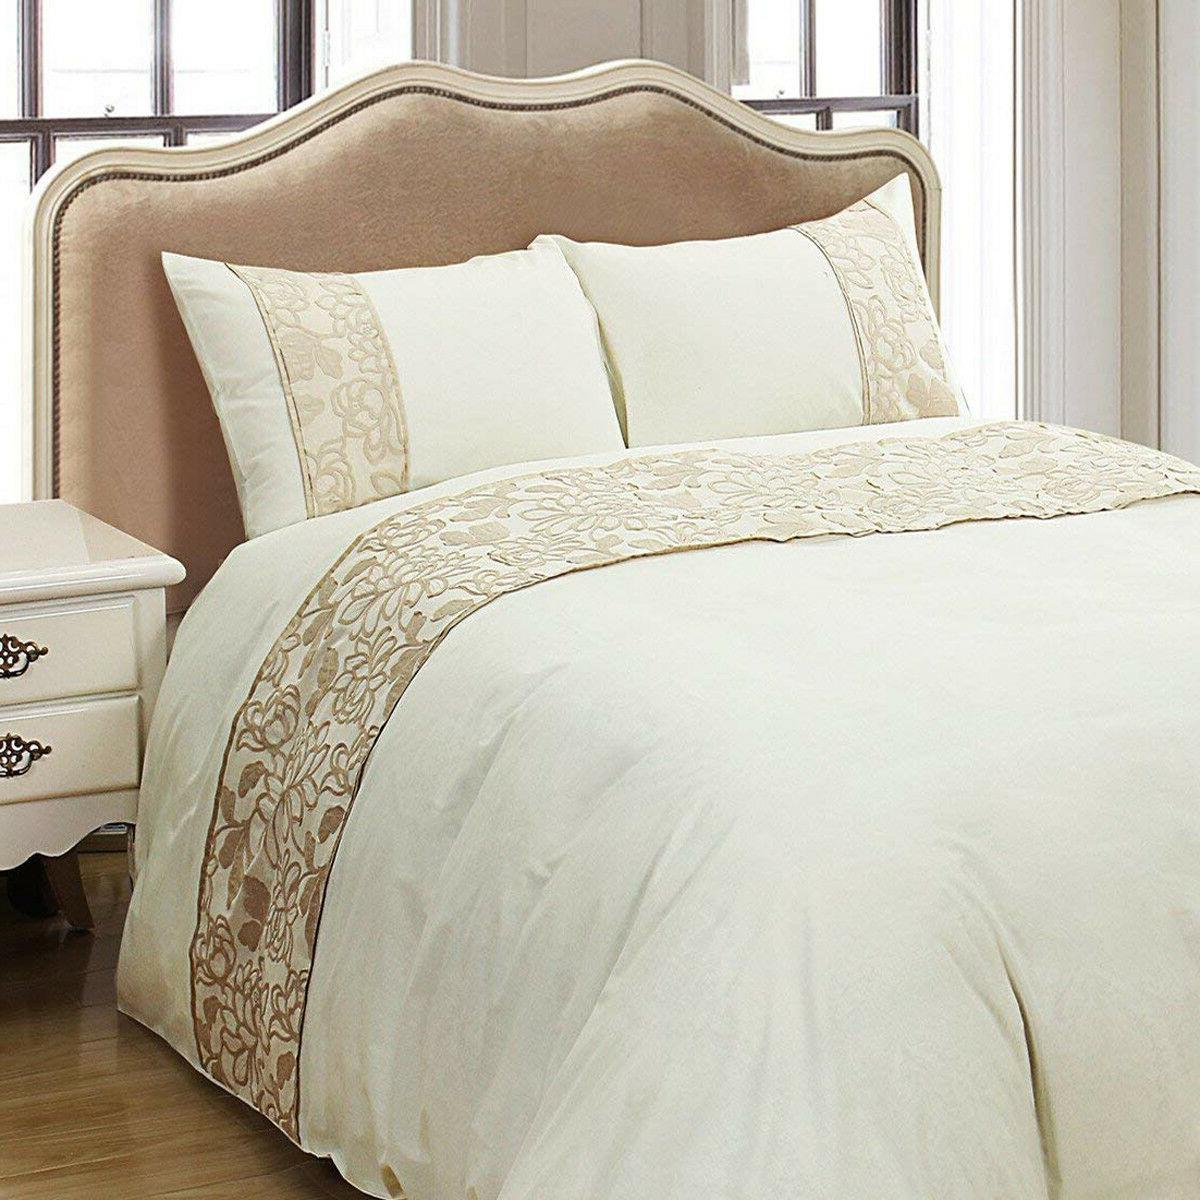 embroideried duvet cover glod floral pattern luxury